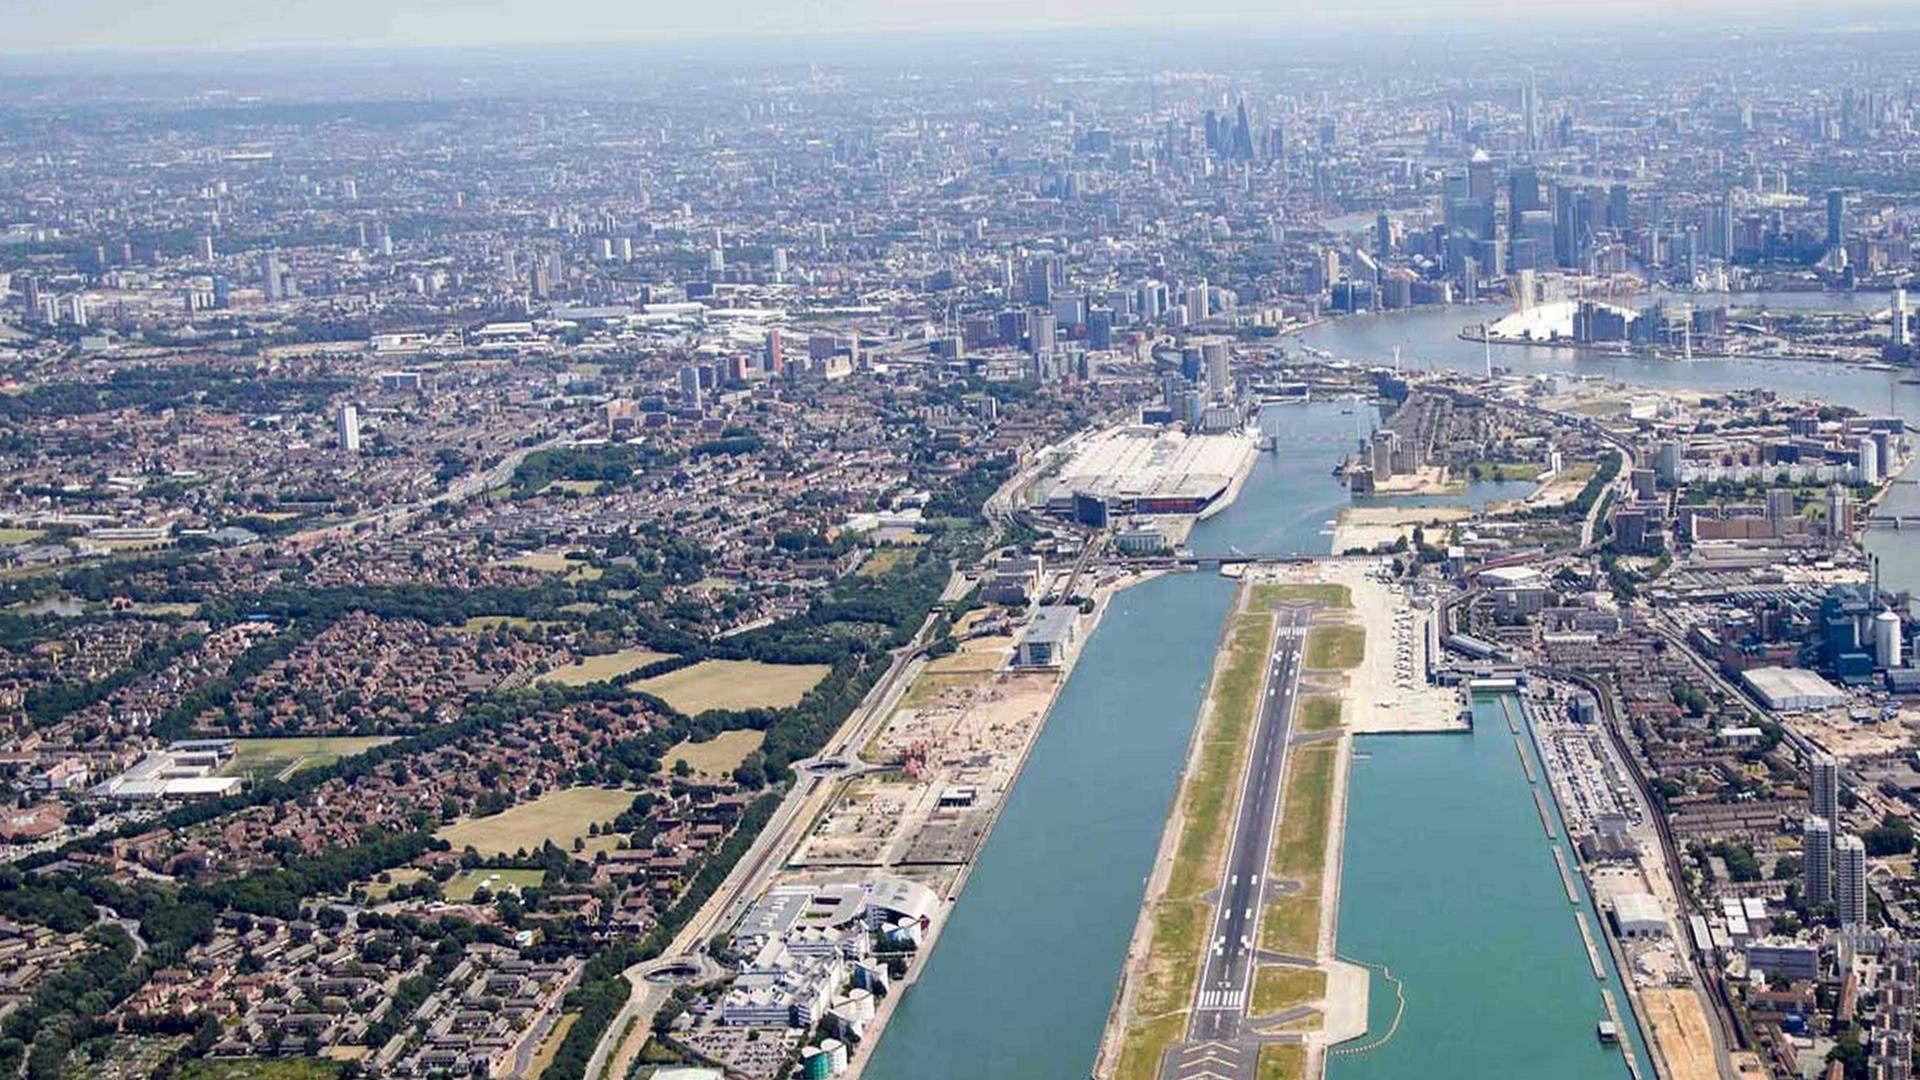 The London City Airport Information